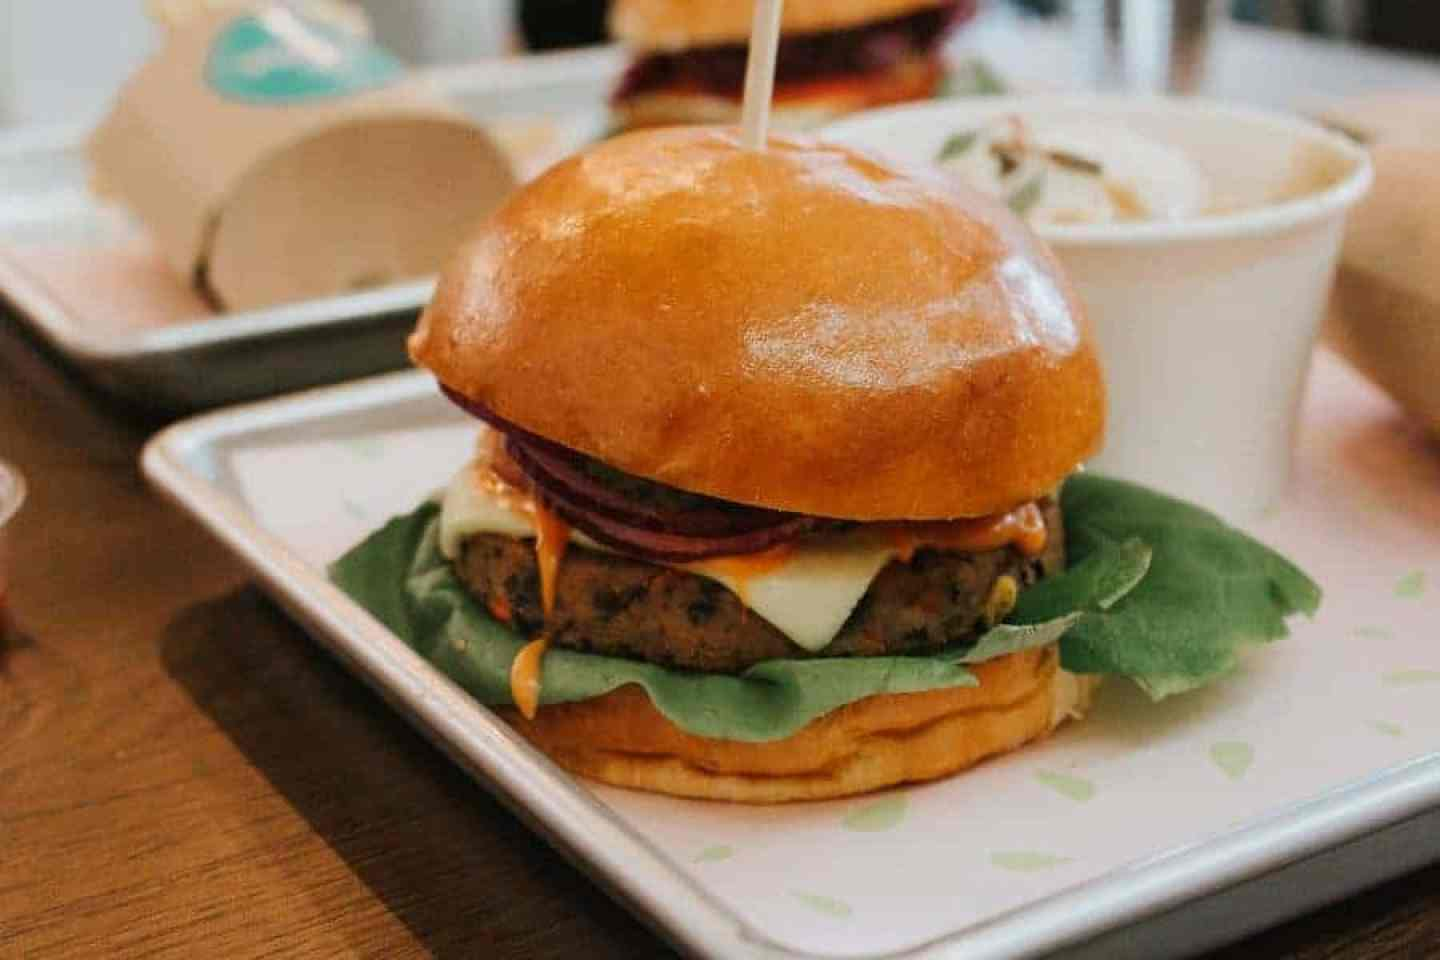 Close up of the Auburger - The Vurger Co Review: A Vegan Burger Bar in Shoreditch